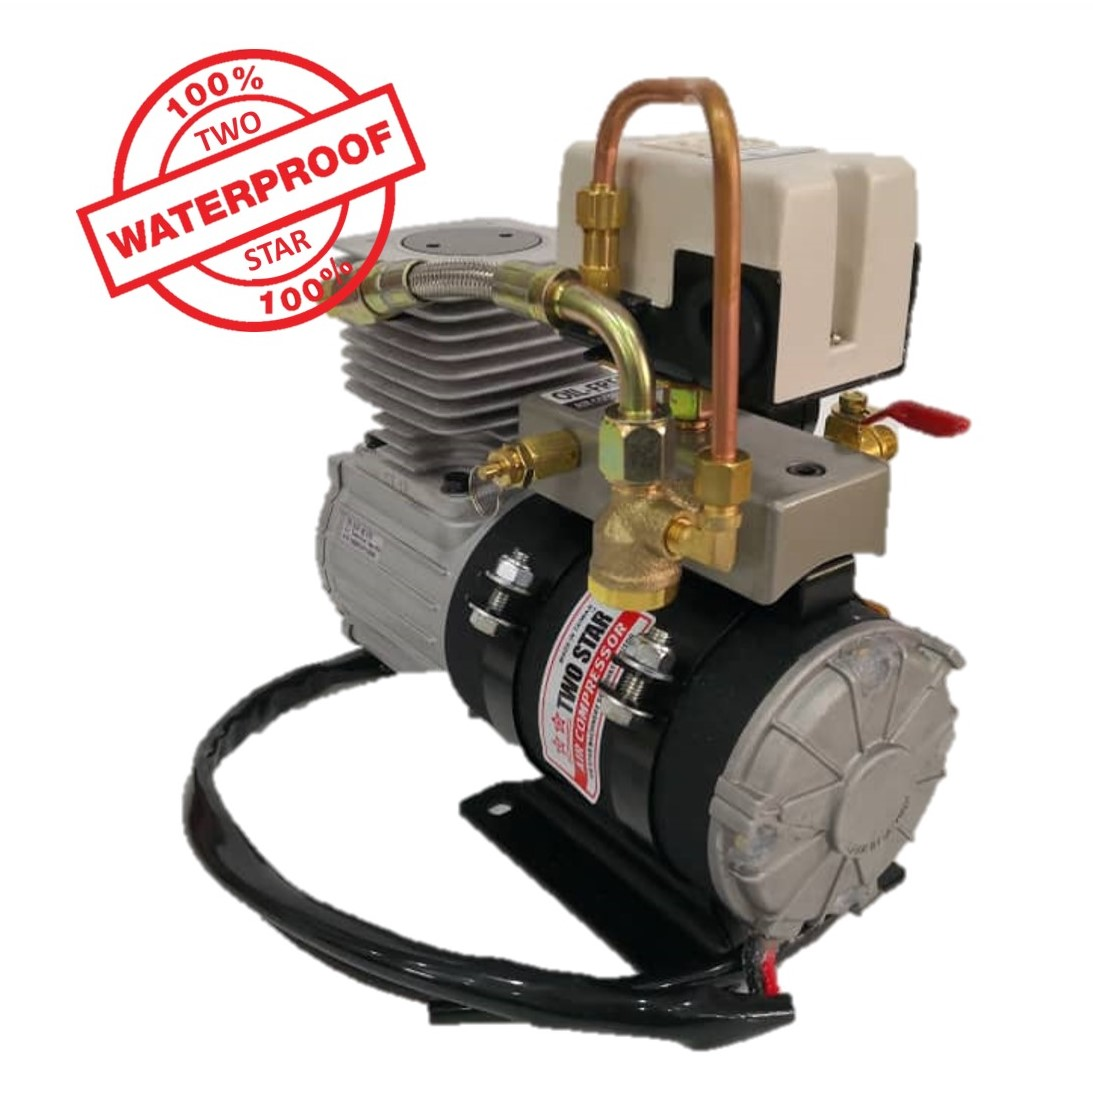 Two Star Waterproof FD-D1P Air Compressor